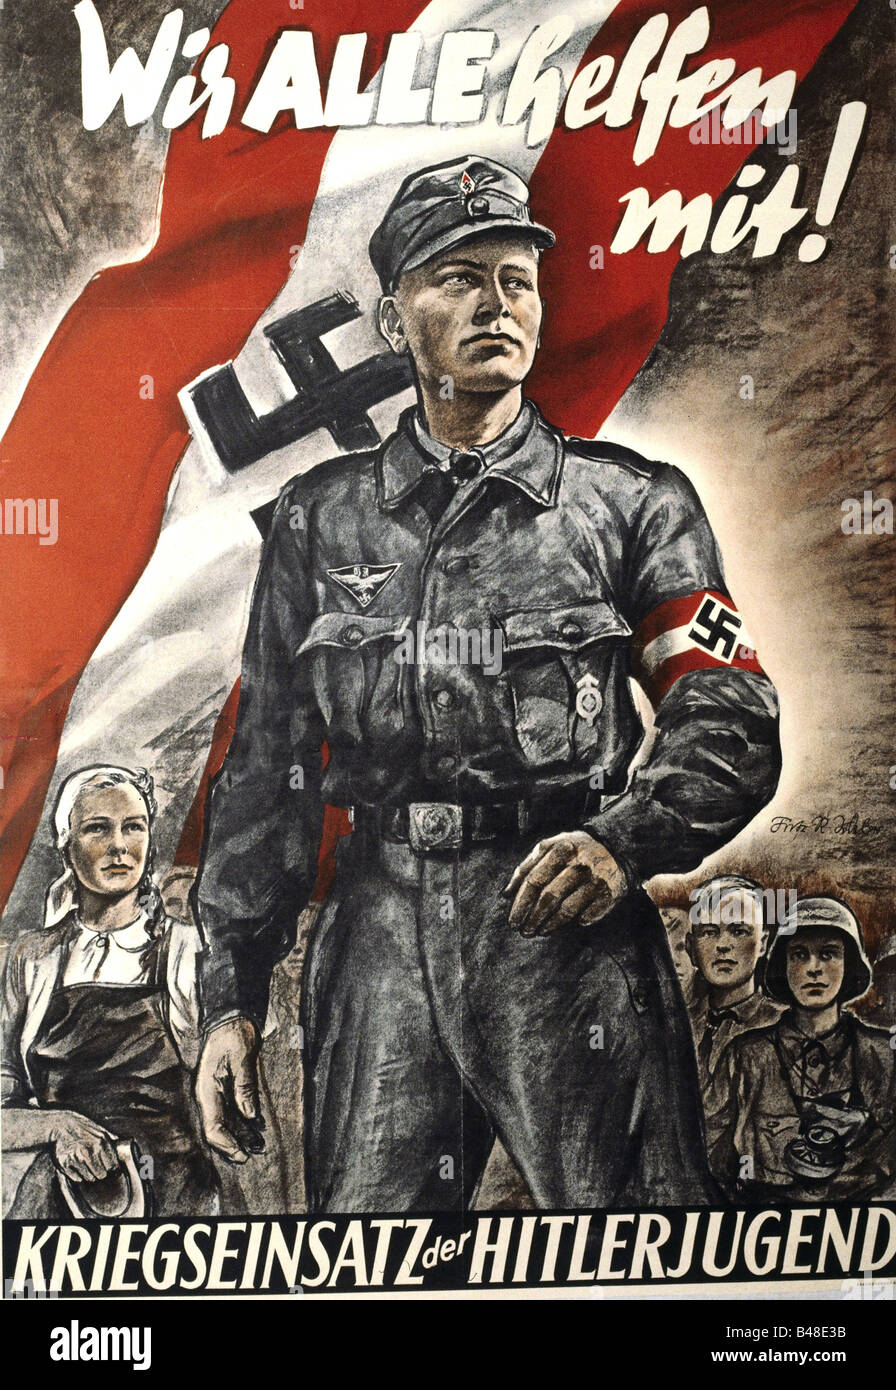 the rise of fascism in germany The rise of nazism in germany internet the killing of millions of jews and other non-aryans in the holocaust is the greatest crime against humanity recorded in history.